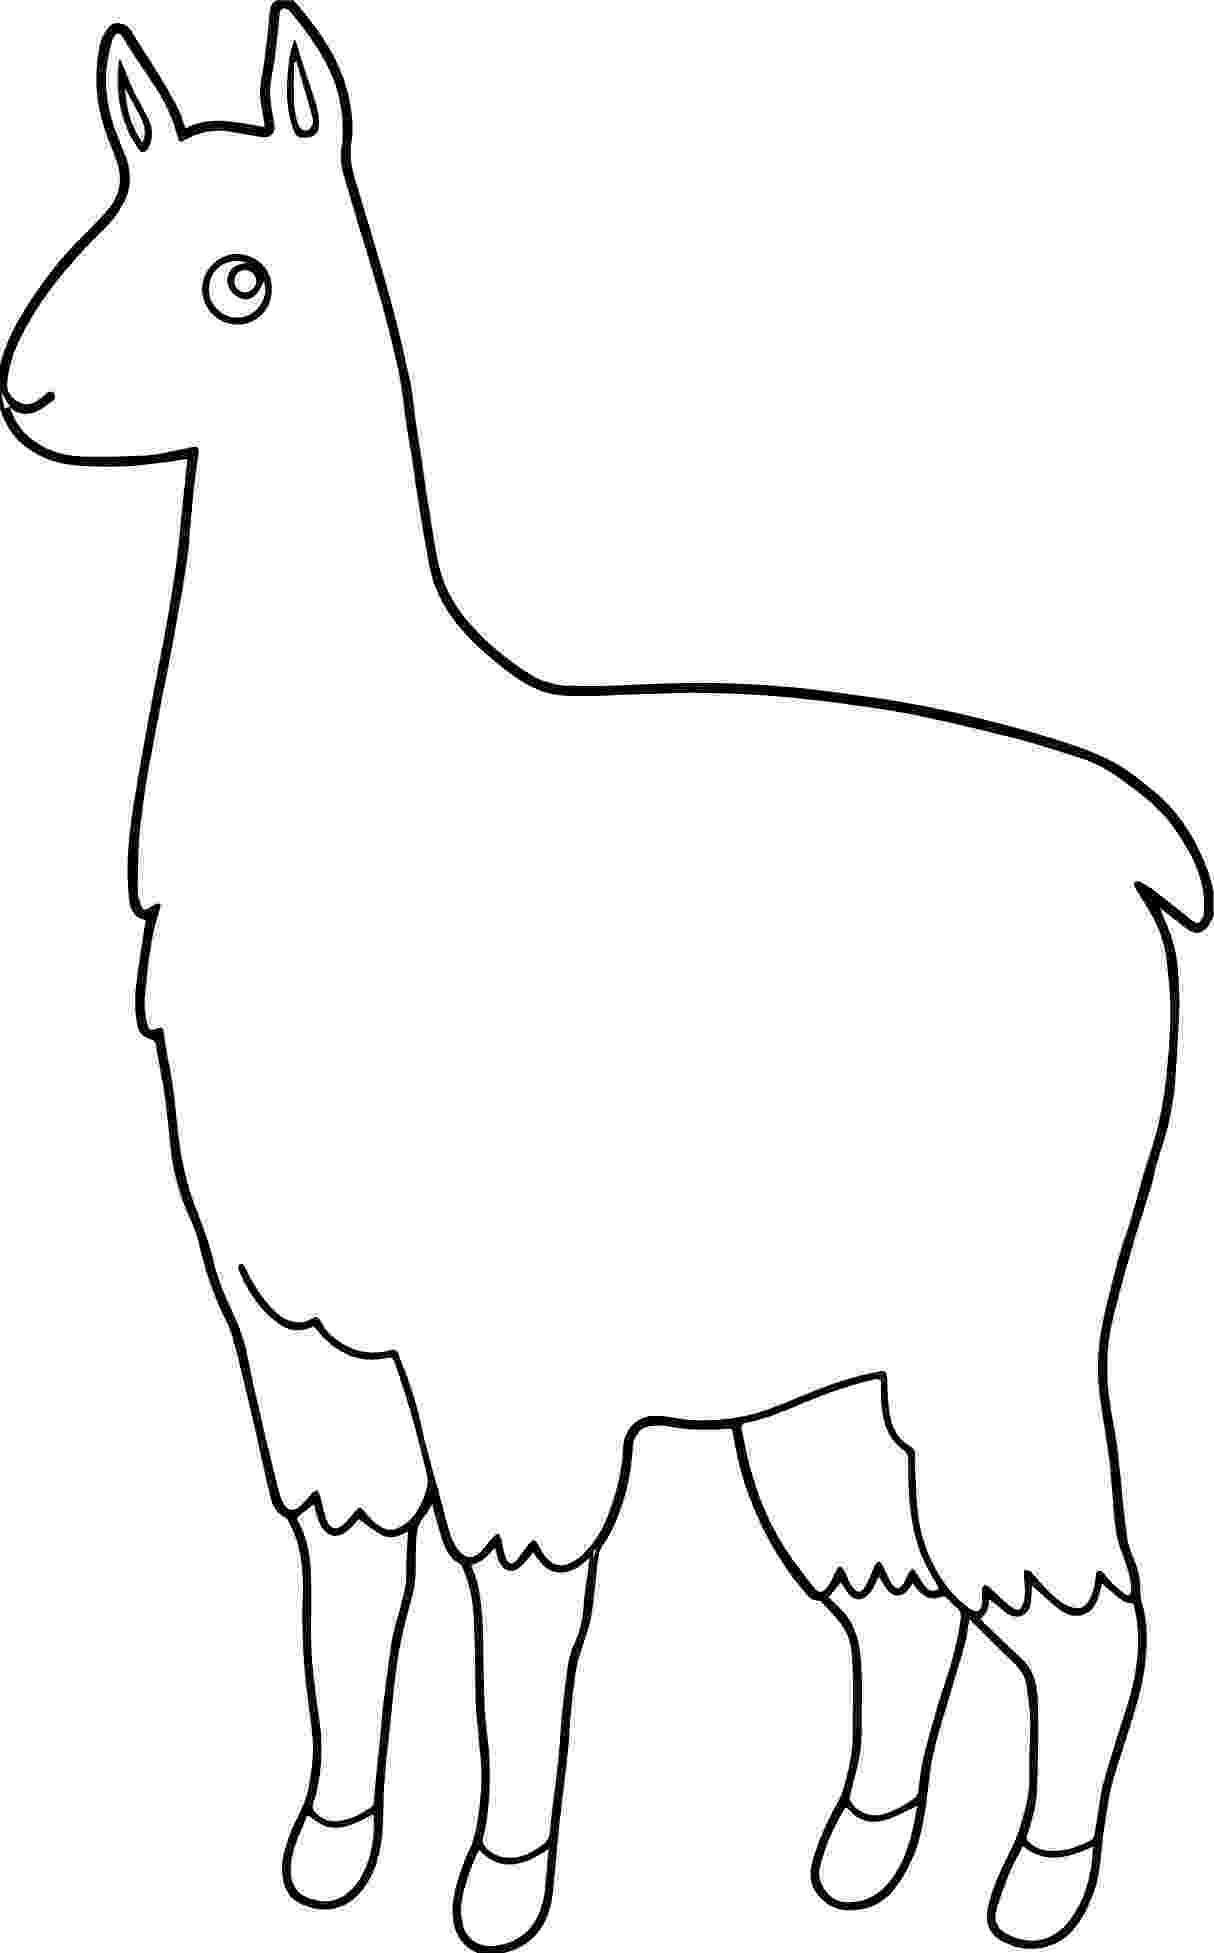 alpaca coloring pages alpaca coloring pages printable pages coloring alpaca